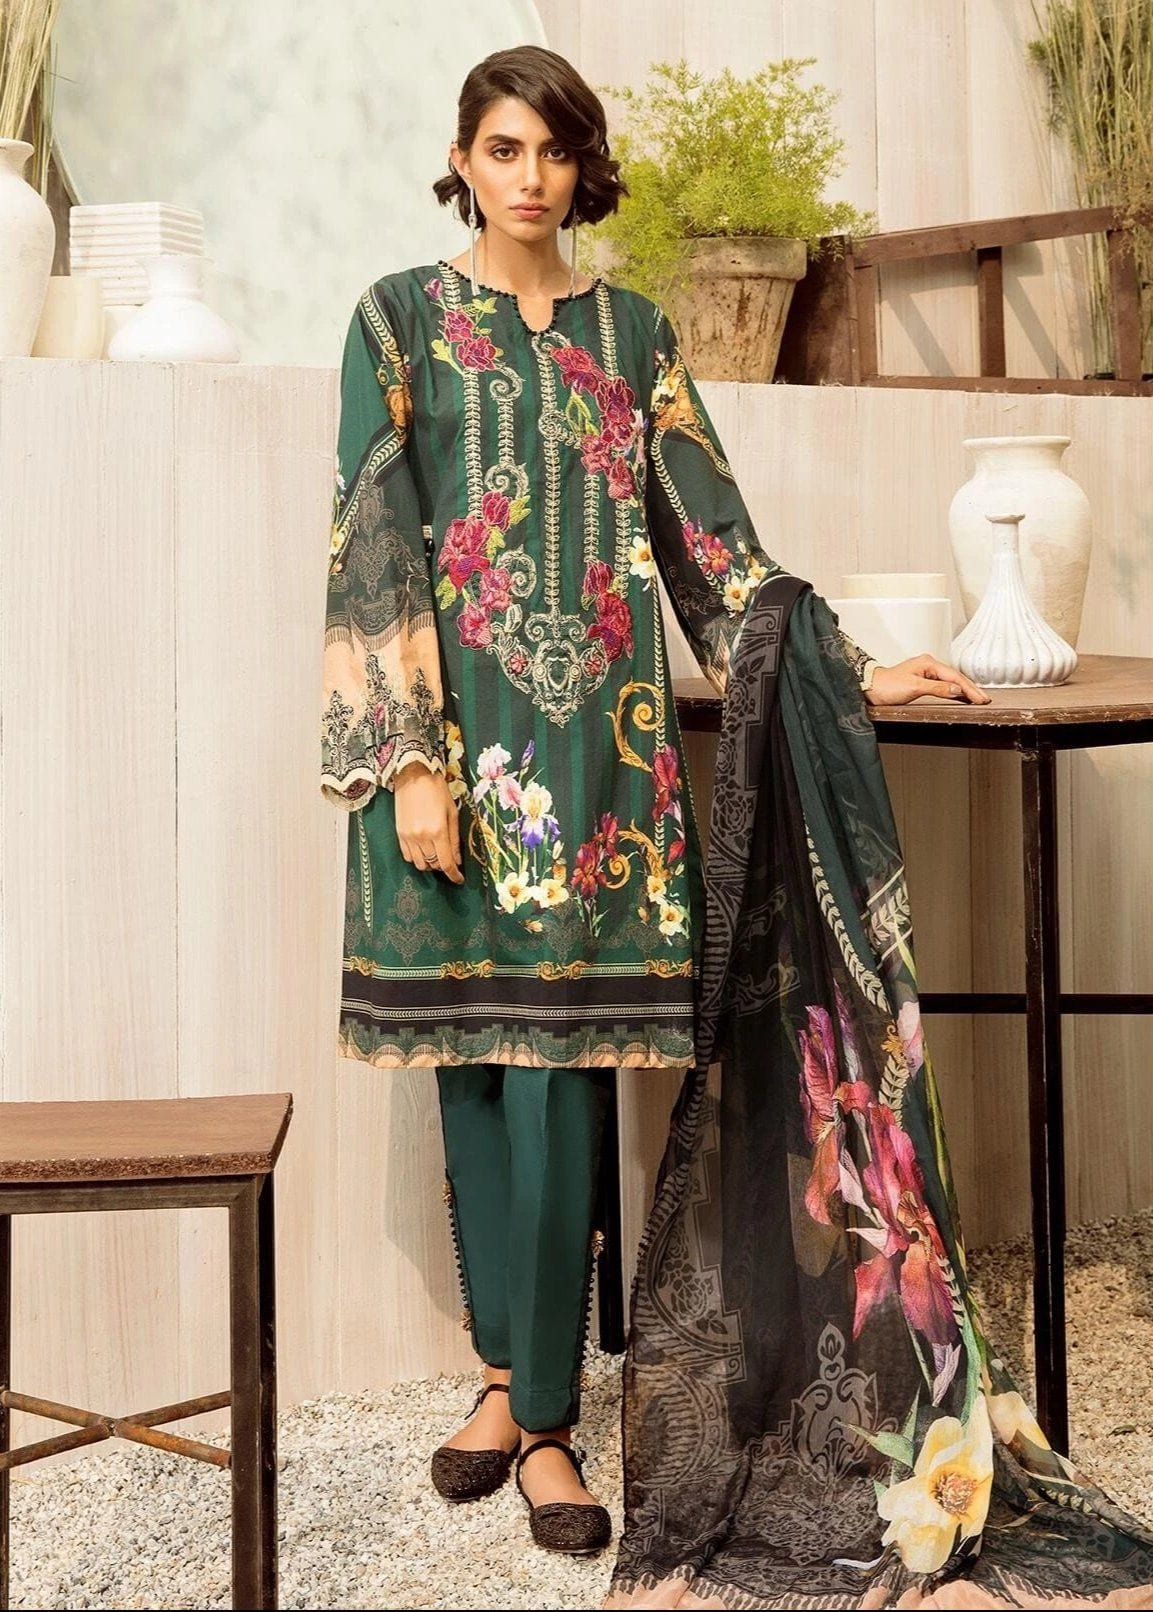 Beechtree 18597-Embroided 3pc khaddar dress with wool shawl. - gracestore.pk